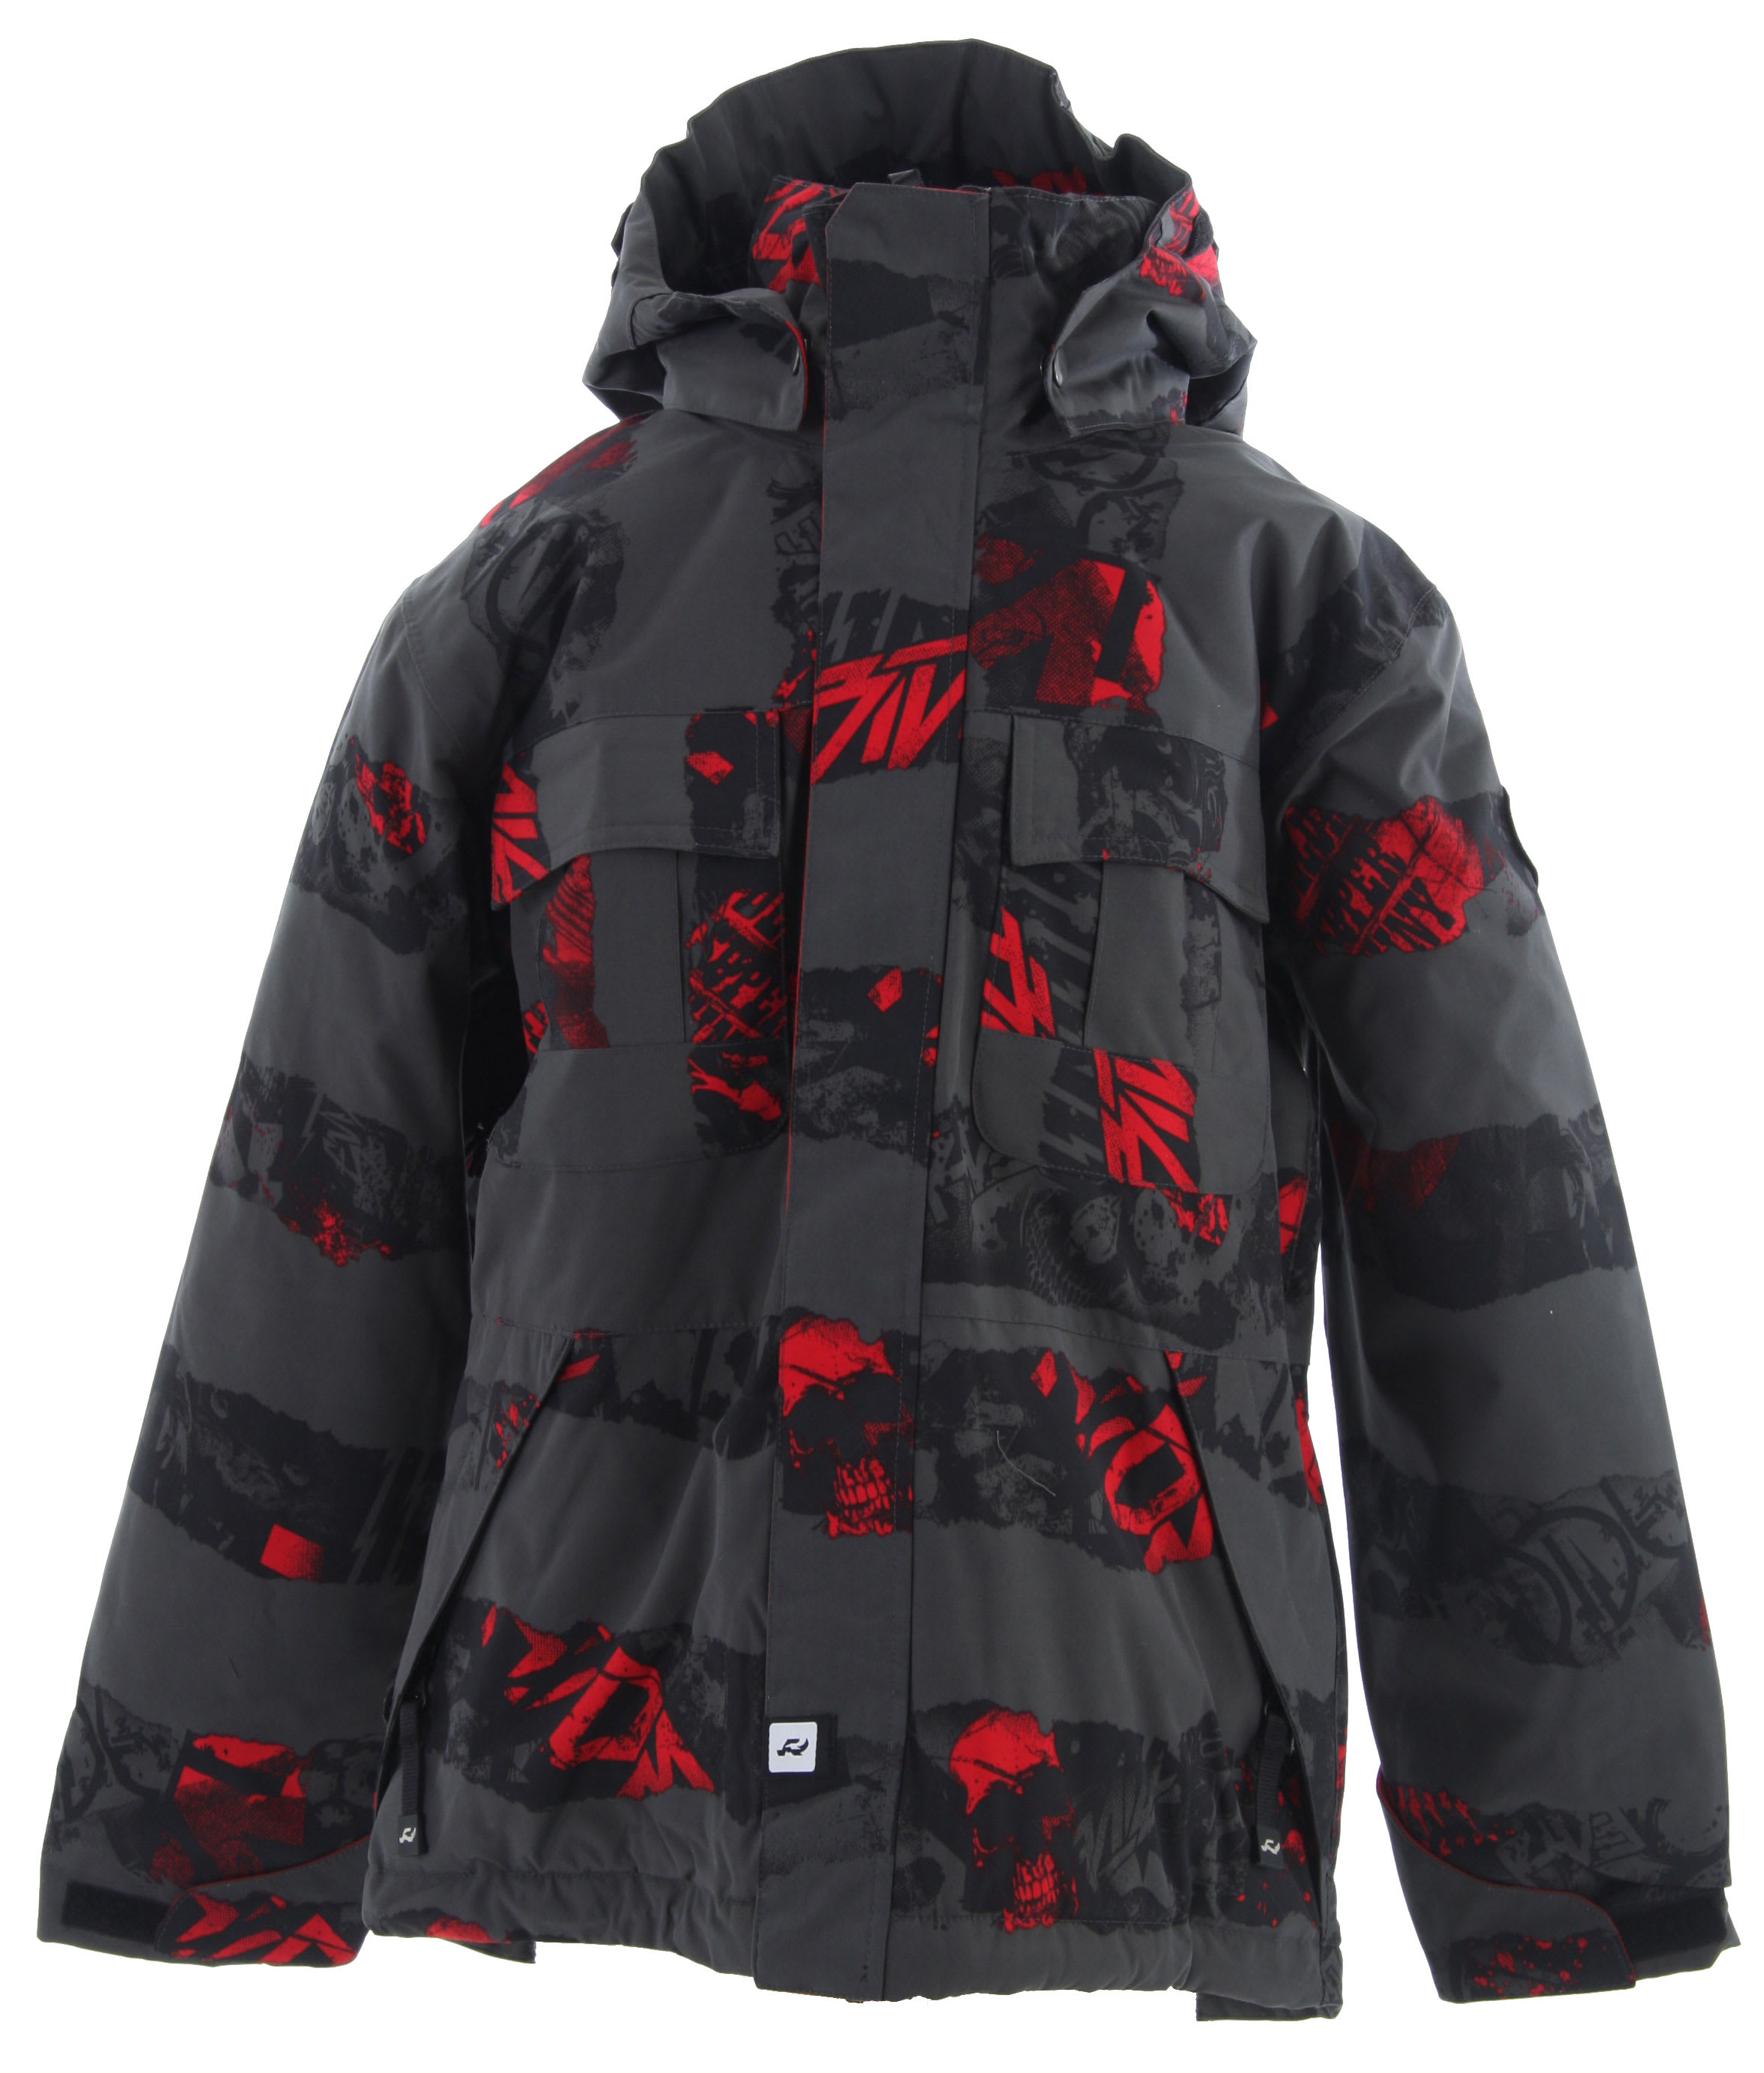 Shop for Ride Hemi Snowboard Jacket Torn Stripe Print Red - Kid's